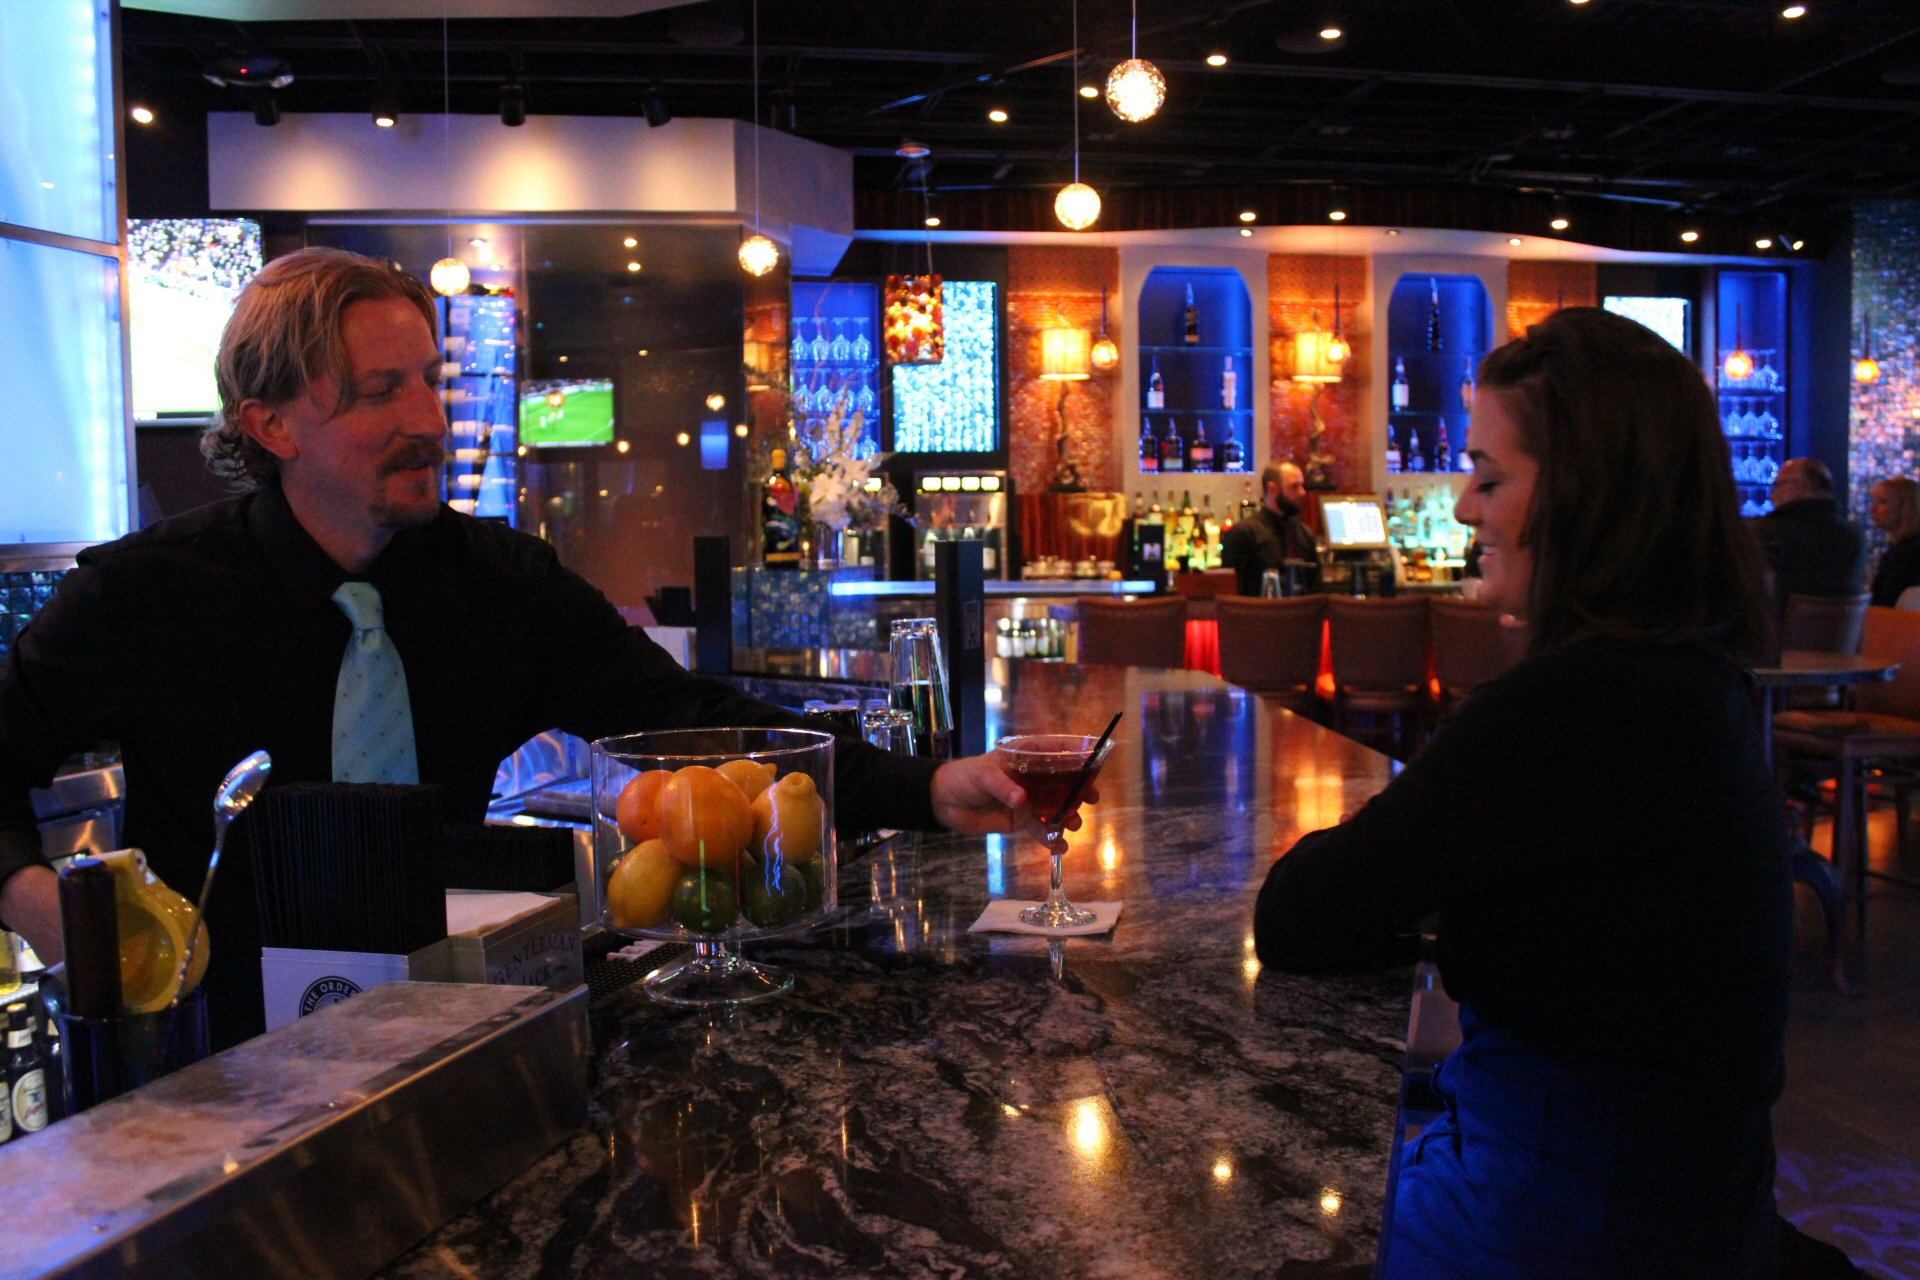 Bartender serving drink to person